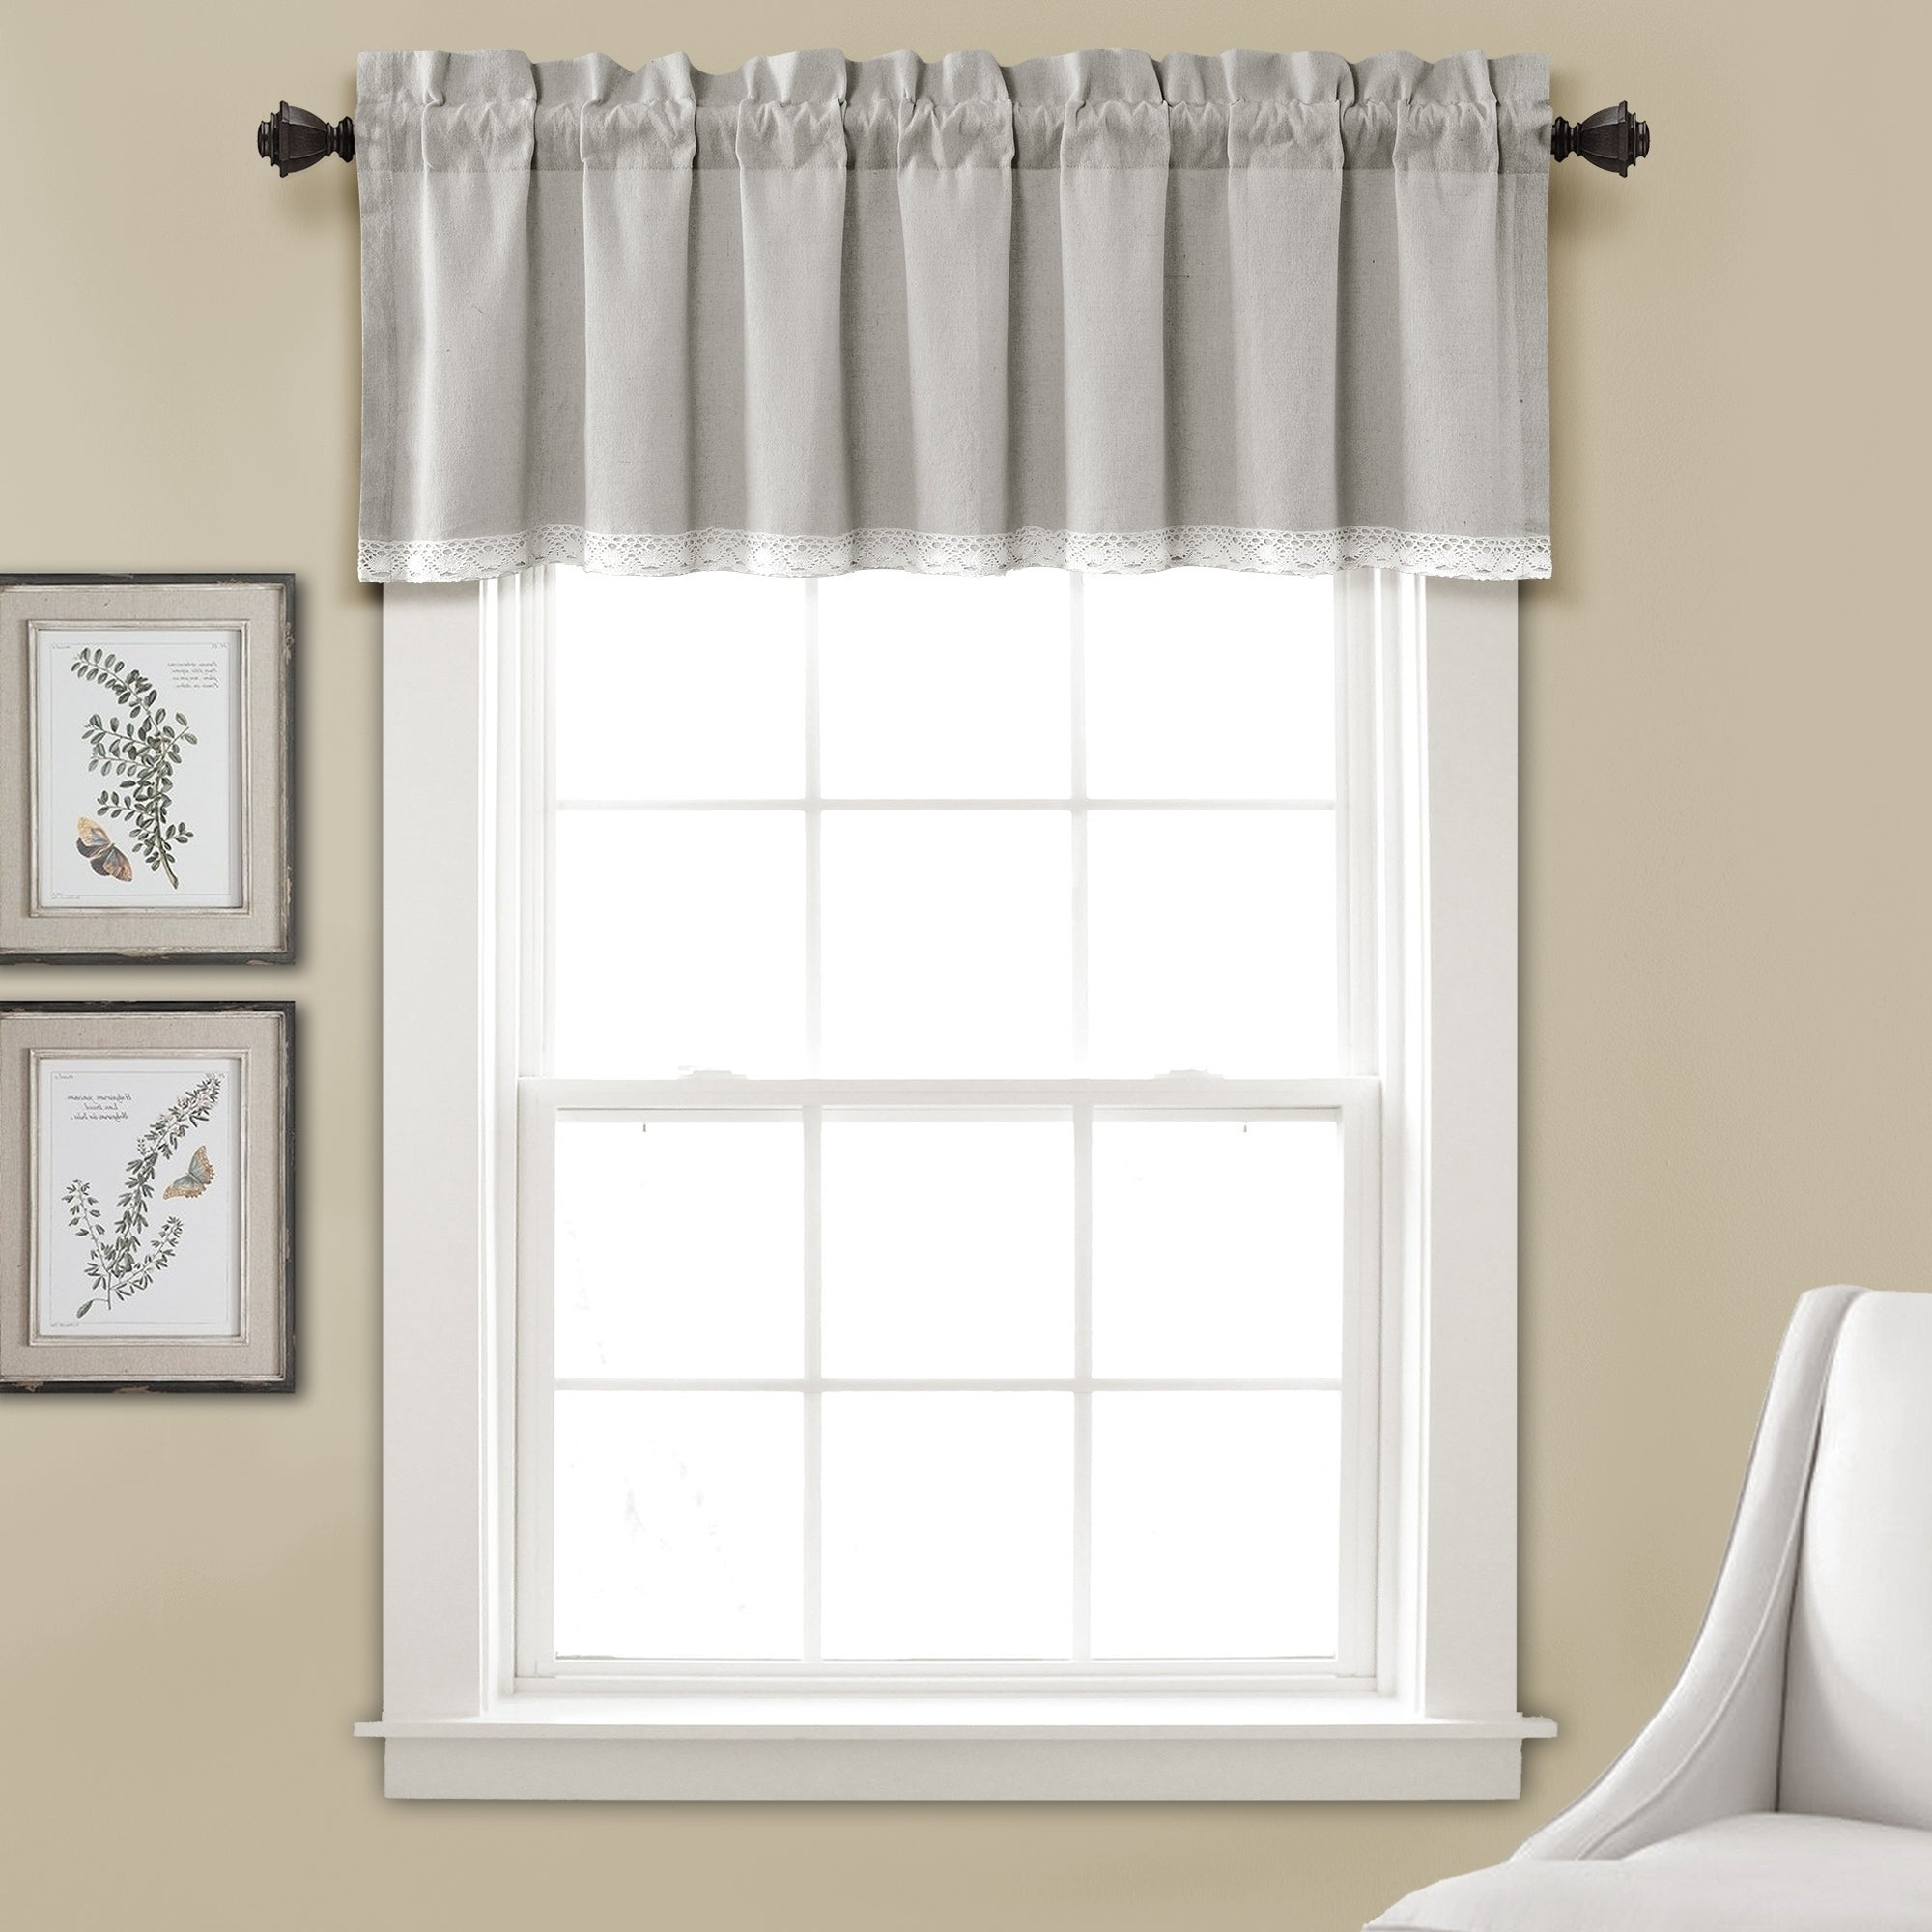 """Lush Decor Linen Lace Window Curtain Valance – 52""""w X 18""""l Pertaining To Favorite Luxury Light Filtering Straight Curtain Valances (Gallery 12 of 20)"""